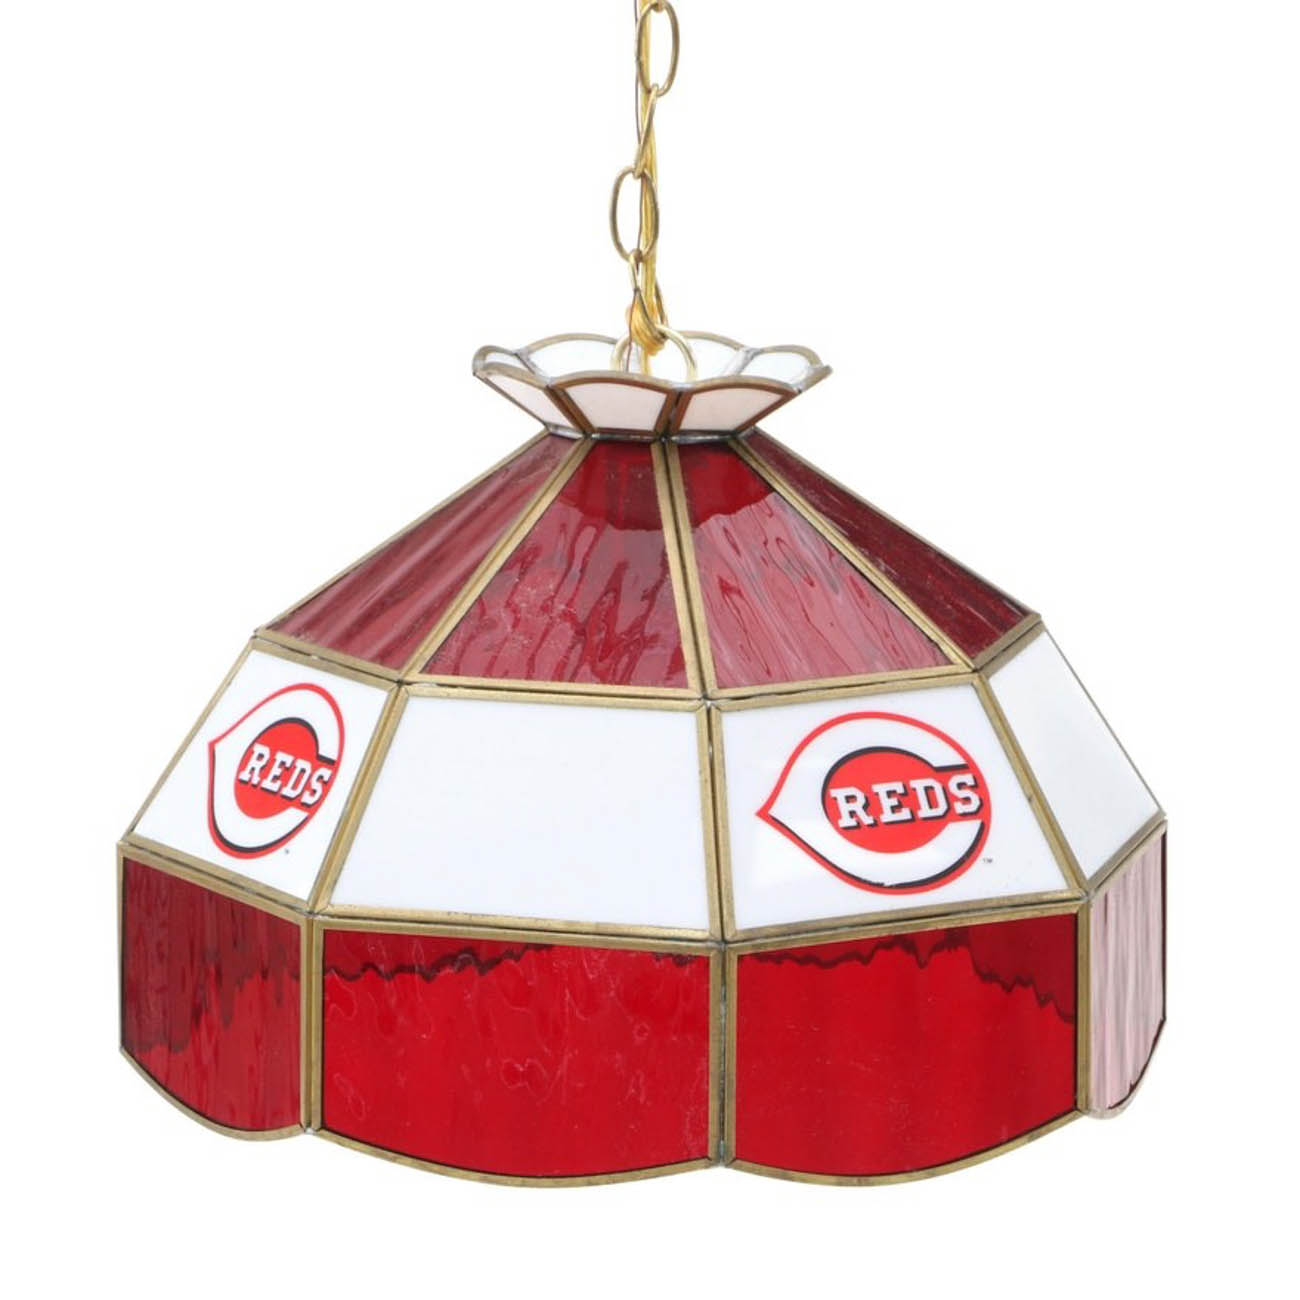 Cincinnati Reds pendant ceiling light fixture / Image courtesy of Everything But The House (EBTH) // Published: 12.6.18